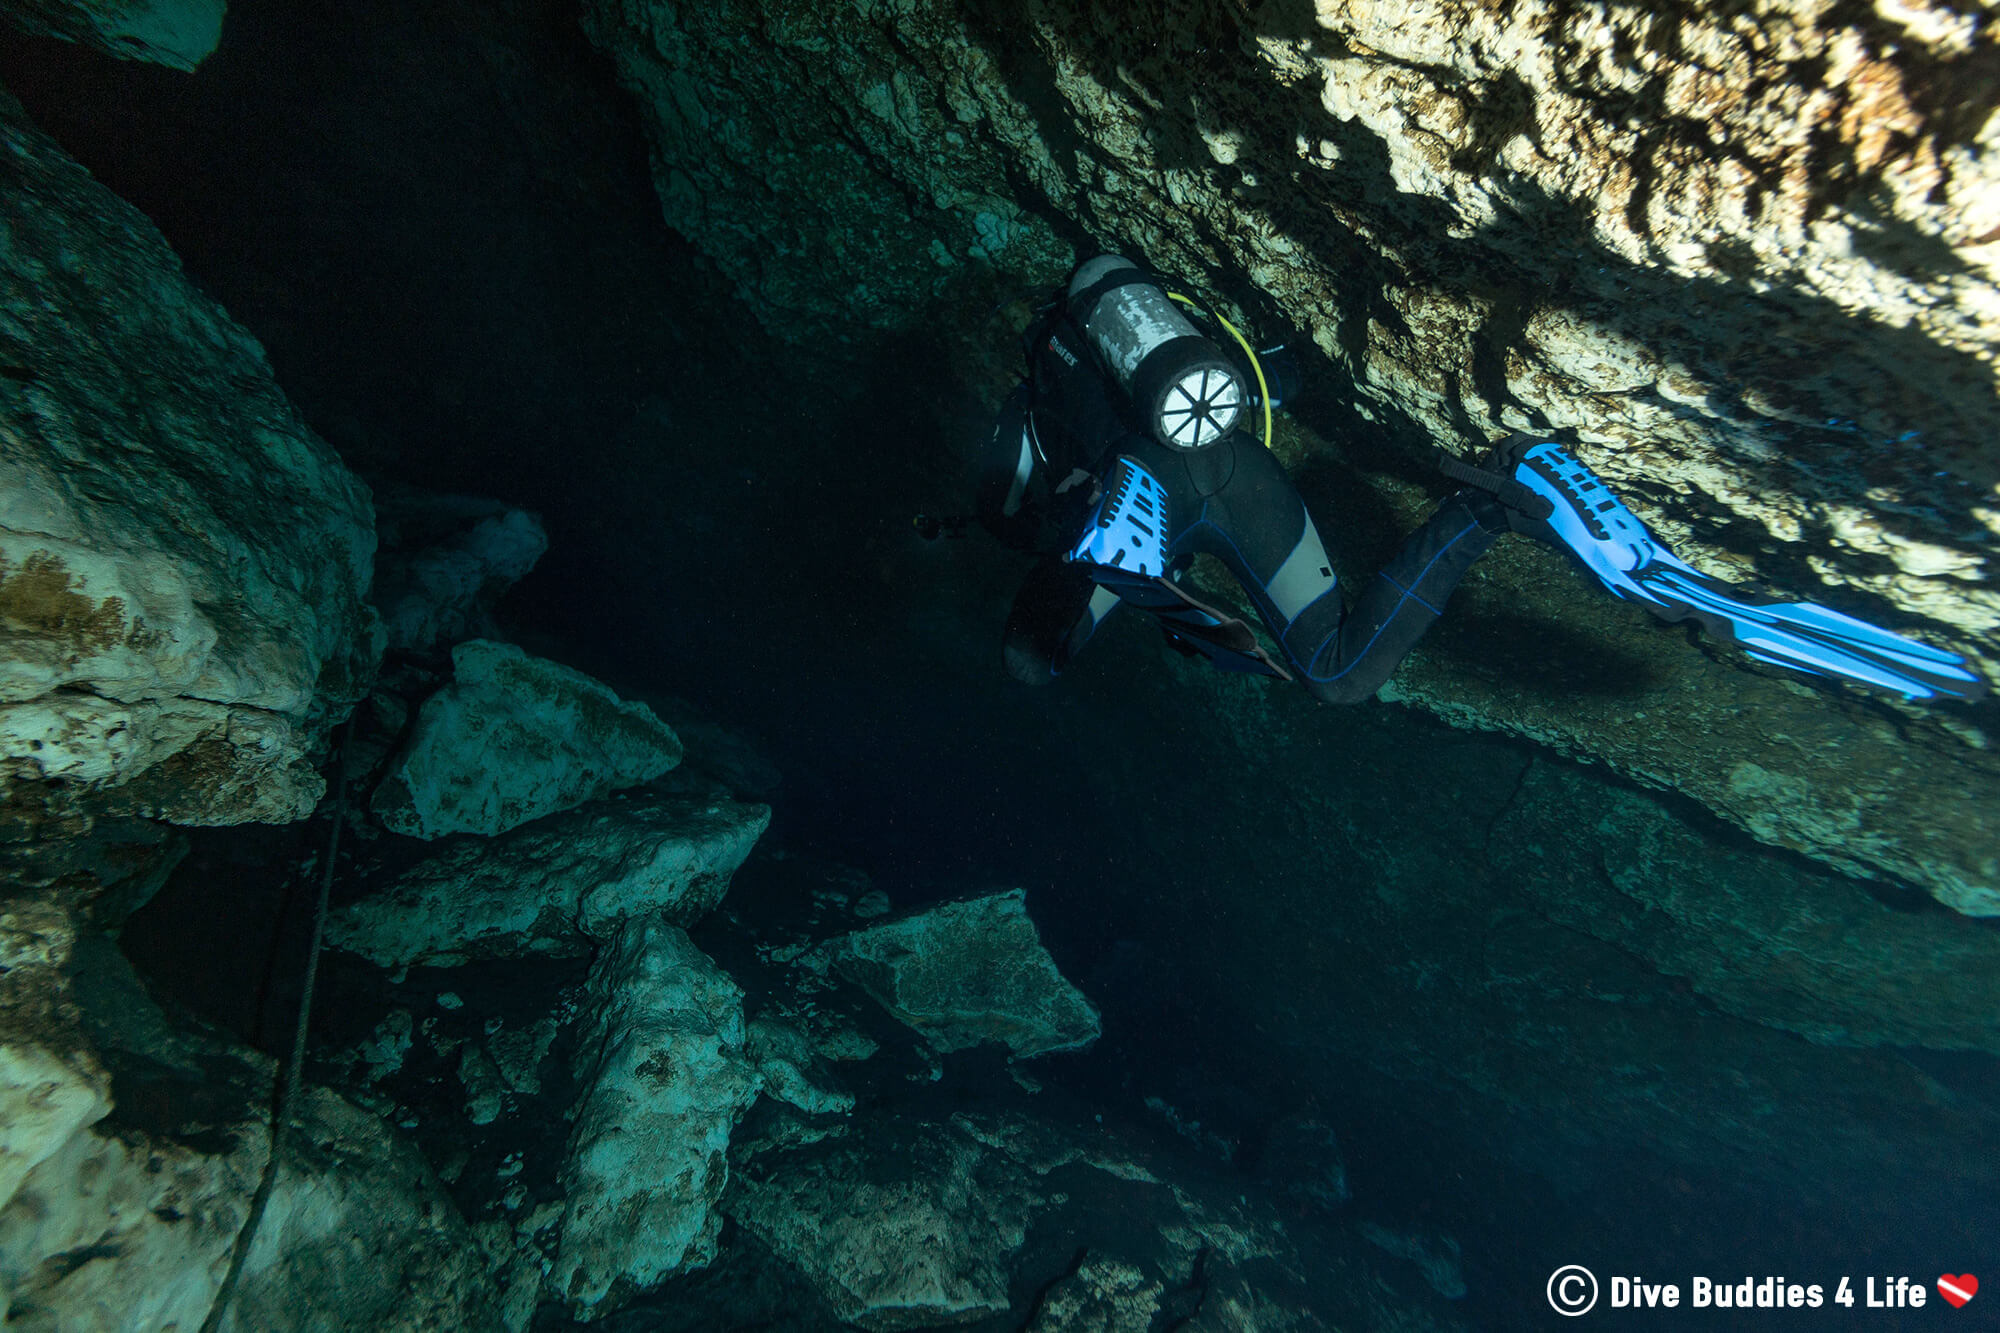 Joey In His Scuba Equipment Diving Into Florida's Blue Grotto Cavern, USA